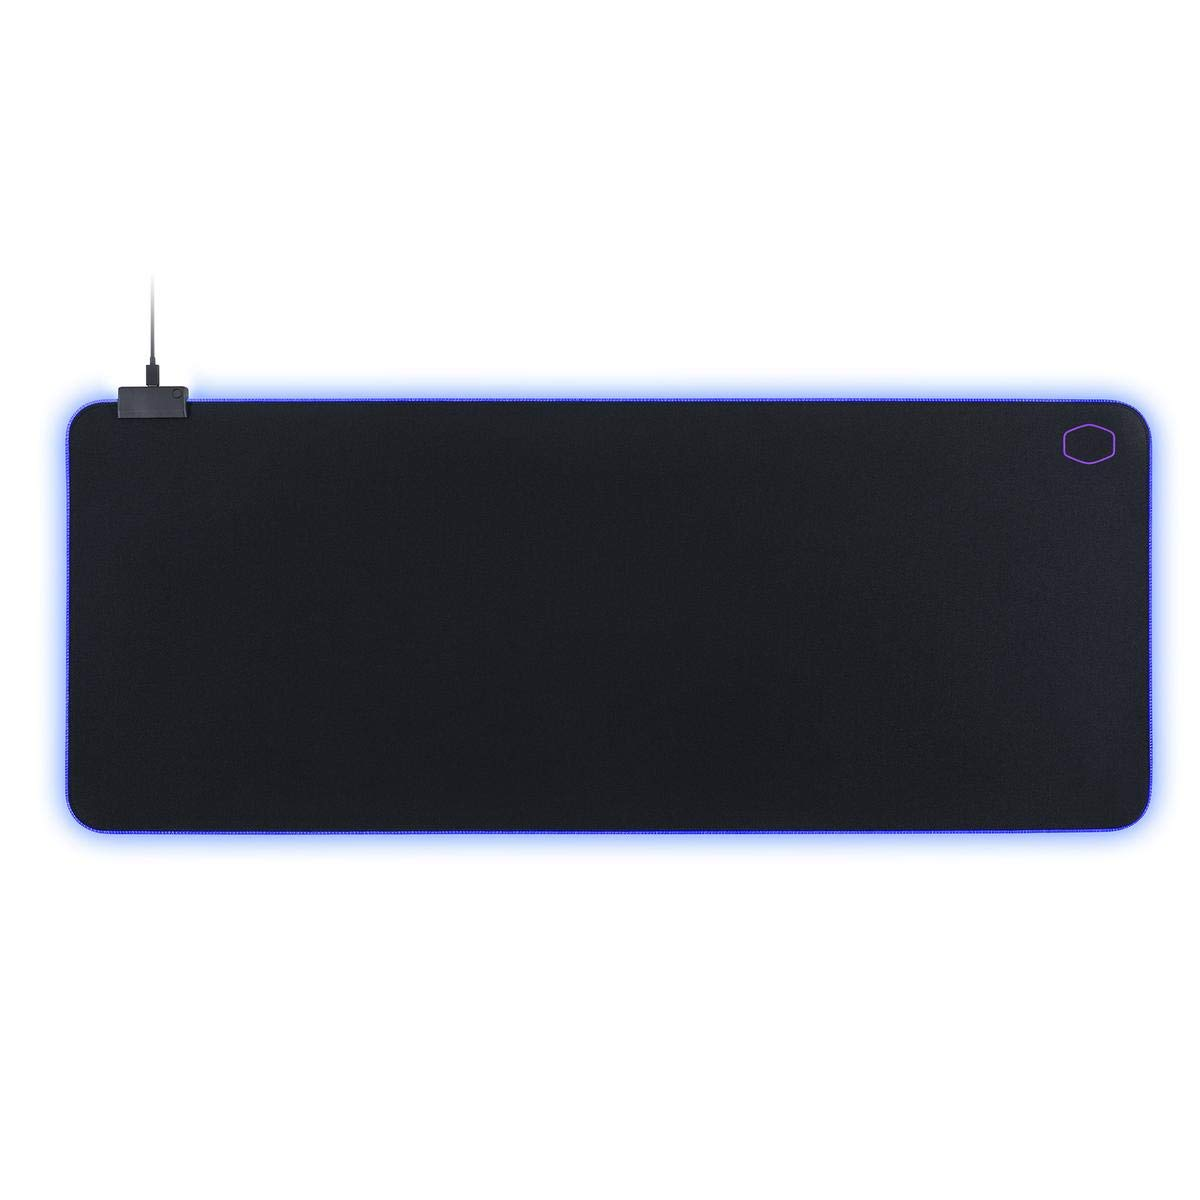 Cooler Master MasterAccessory MP750 XL Soft Mouse Pad with Water Resistant Surface and Thick RGB Borders by Cooler Master